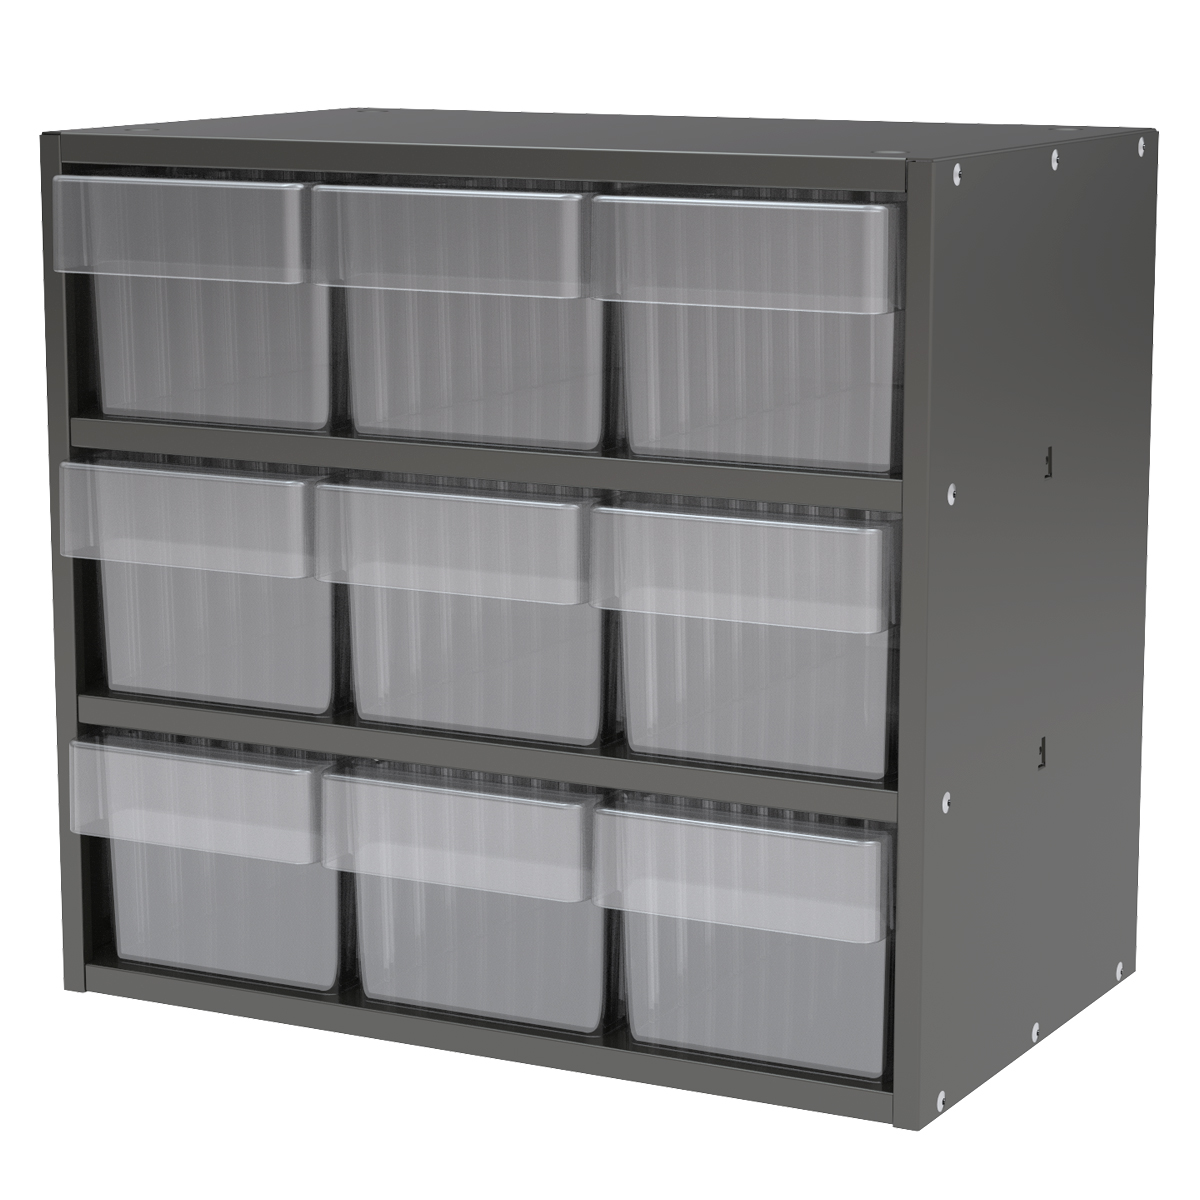 Item DISCONTINUED by Manufacturer.  Modular Cabinet, 18x11x16, 9 Drawers, Gray/Clear (AD1811C62CRY).  This item sold in carton quantities of 1.